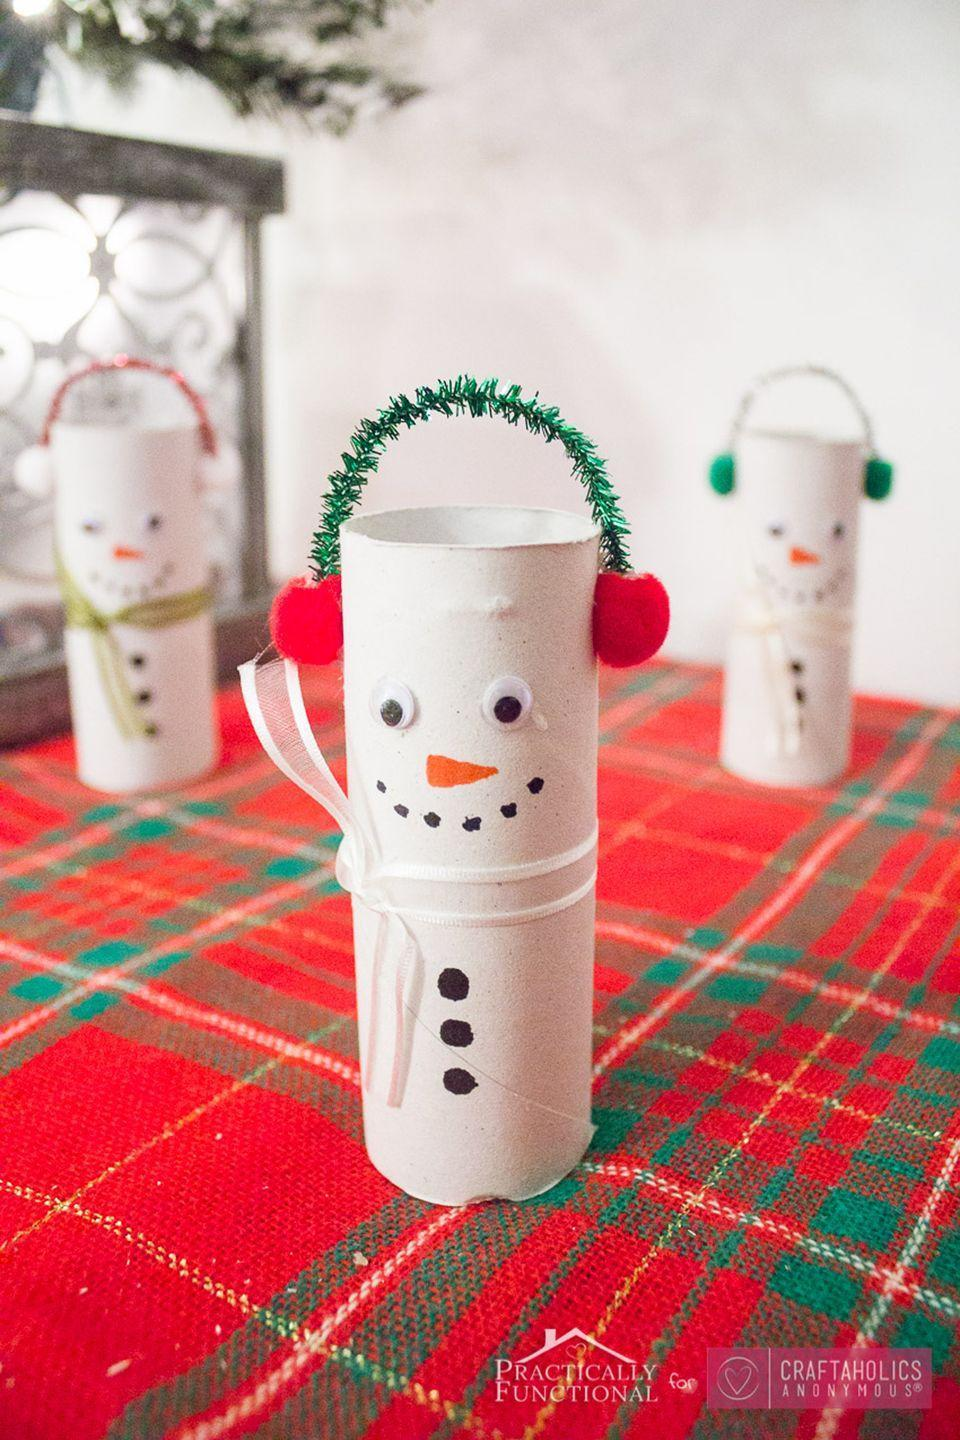 "<p><span>Your kids will love personalizing these mini toilet paper snowmen. </span></p><p><strong>Get the tutorial at <a href=""http://www.craftaholicsanonymous.net/diy-toilet-paper-roll-snowmen"" rel=""nofollow noopener"" target=""_blank"" data-ylk=""slk:Craftaholics Anonymous"" class=""link rapid-noclick-resp"">Craftaholics Anonymous</a>. </strong><br></p>"